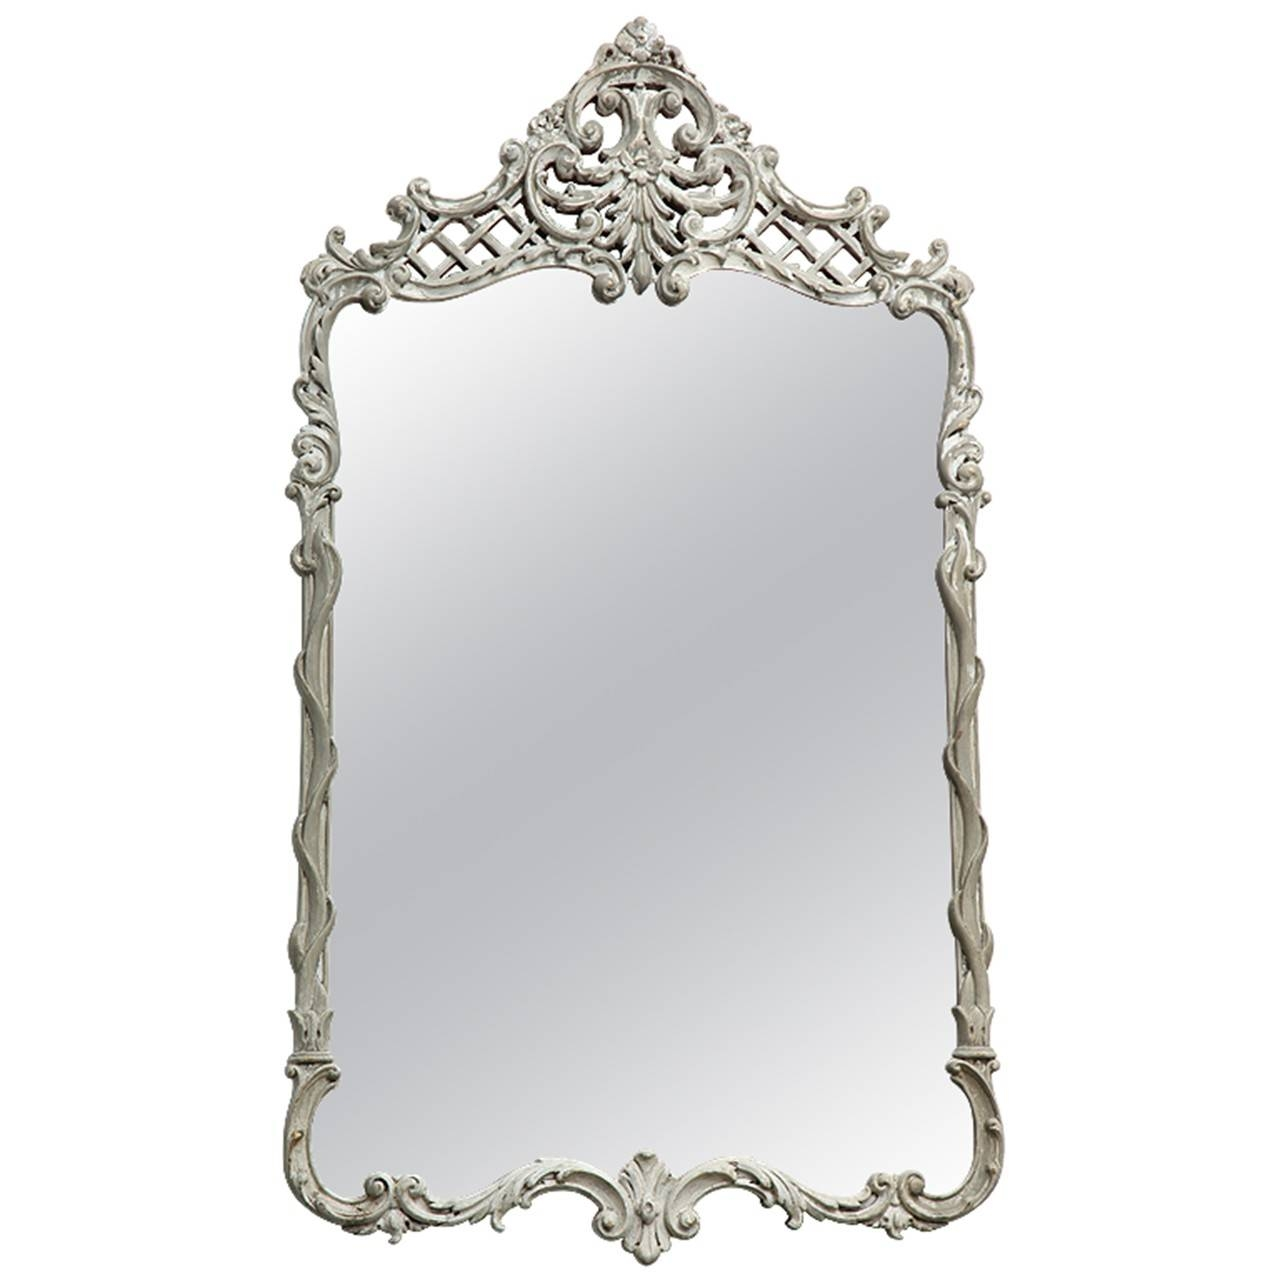 French Rococo Mirror – Prudence Designs & Events | Prudence Within French Rococo Mirrors (View 10 of 15)